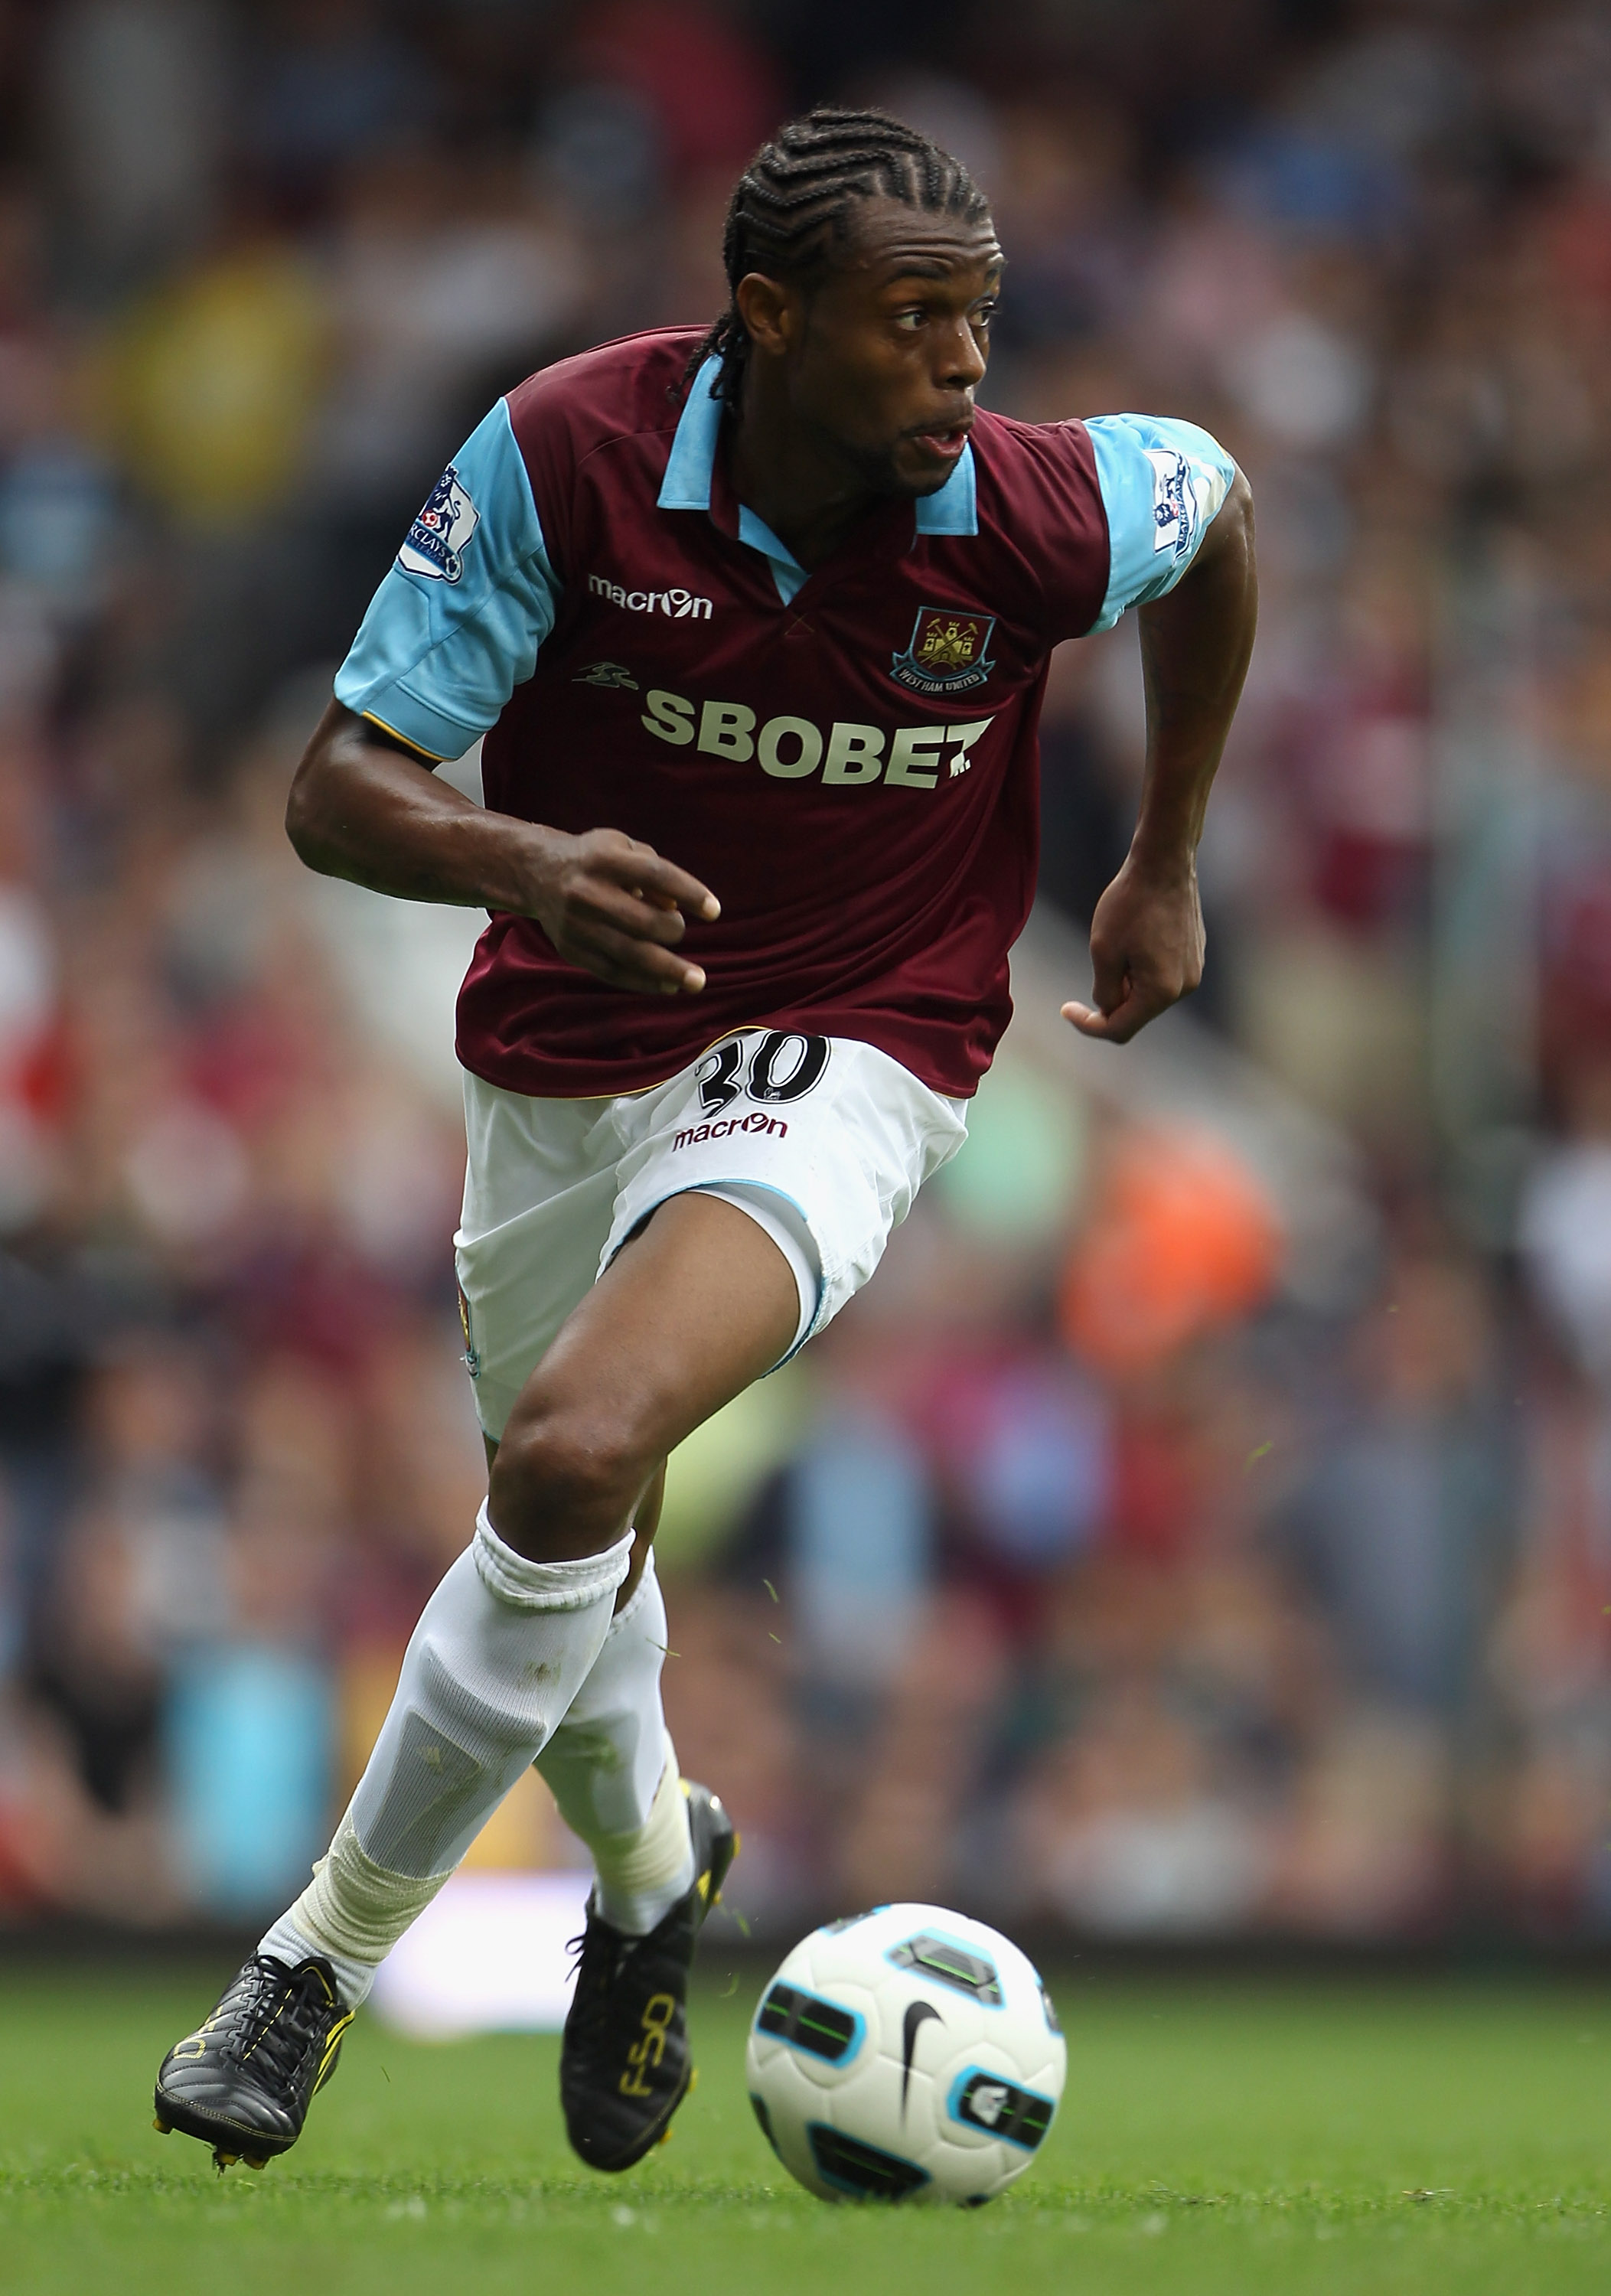 LONDON, ENGLAND - AUGUST 21:  Frederic Piquionne of West Ham United runs with the ball during the Barclays Premier League match between West Ham United and Bolton Wanderers at the Boleyn Ground on August 21, 2010 in London, England.  (Photo by Phil Cole/G